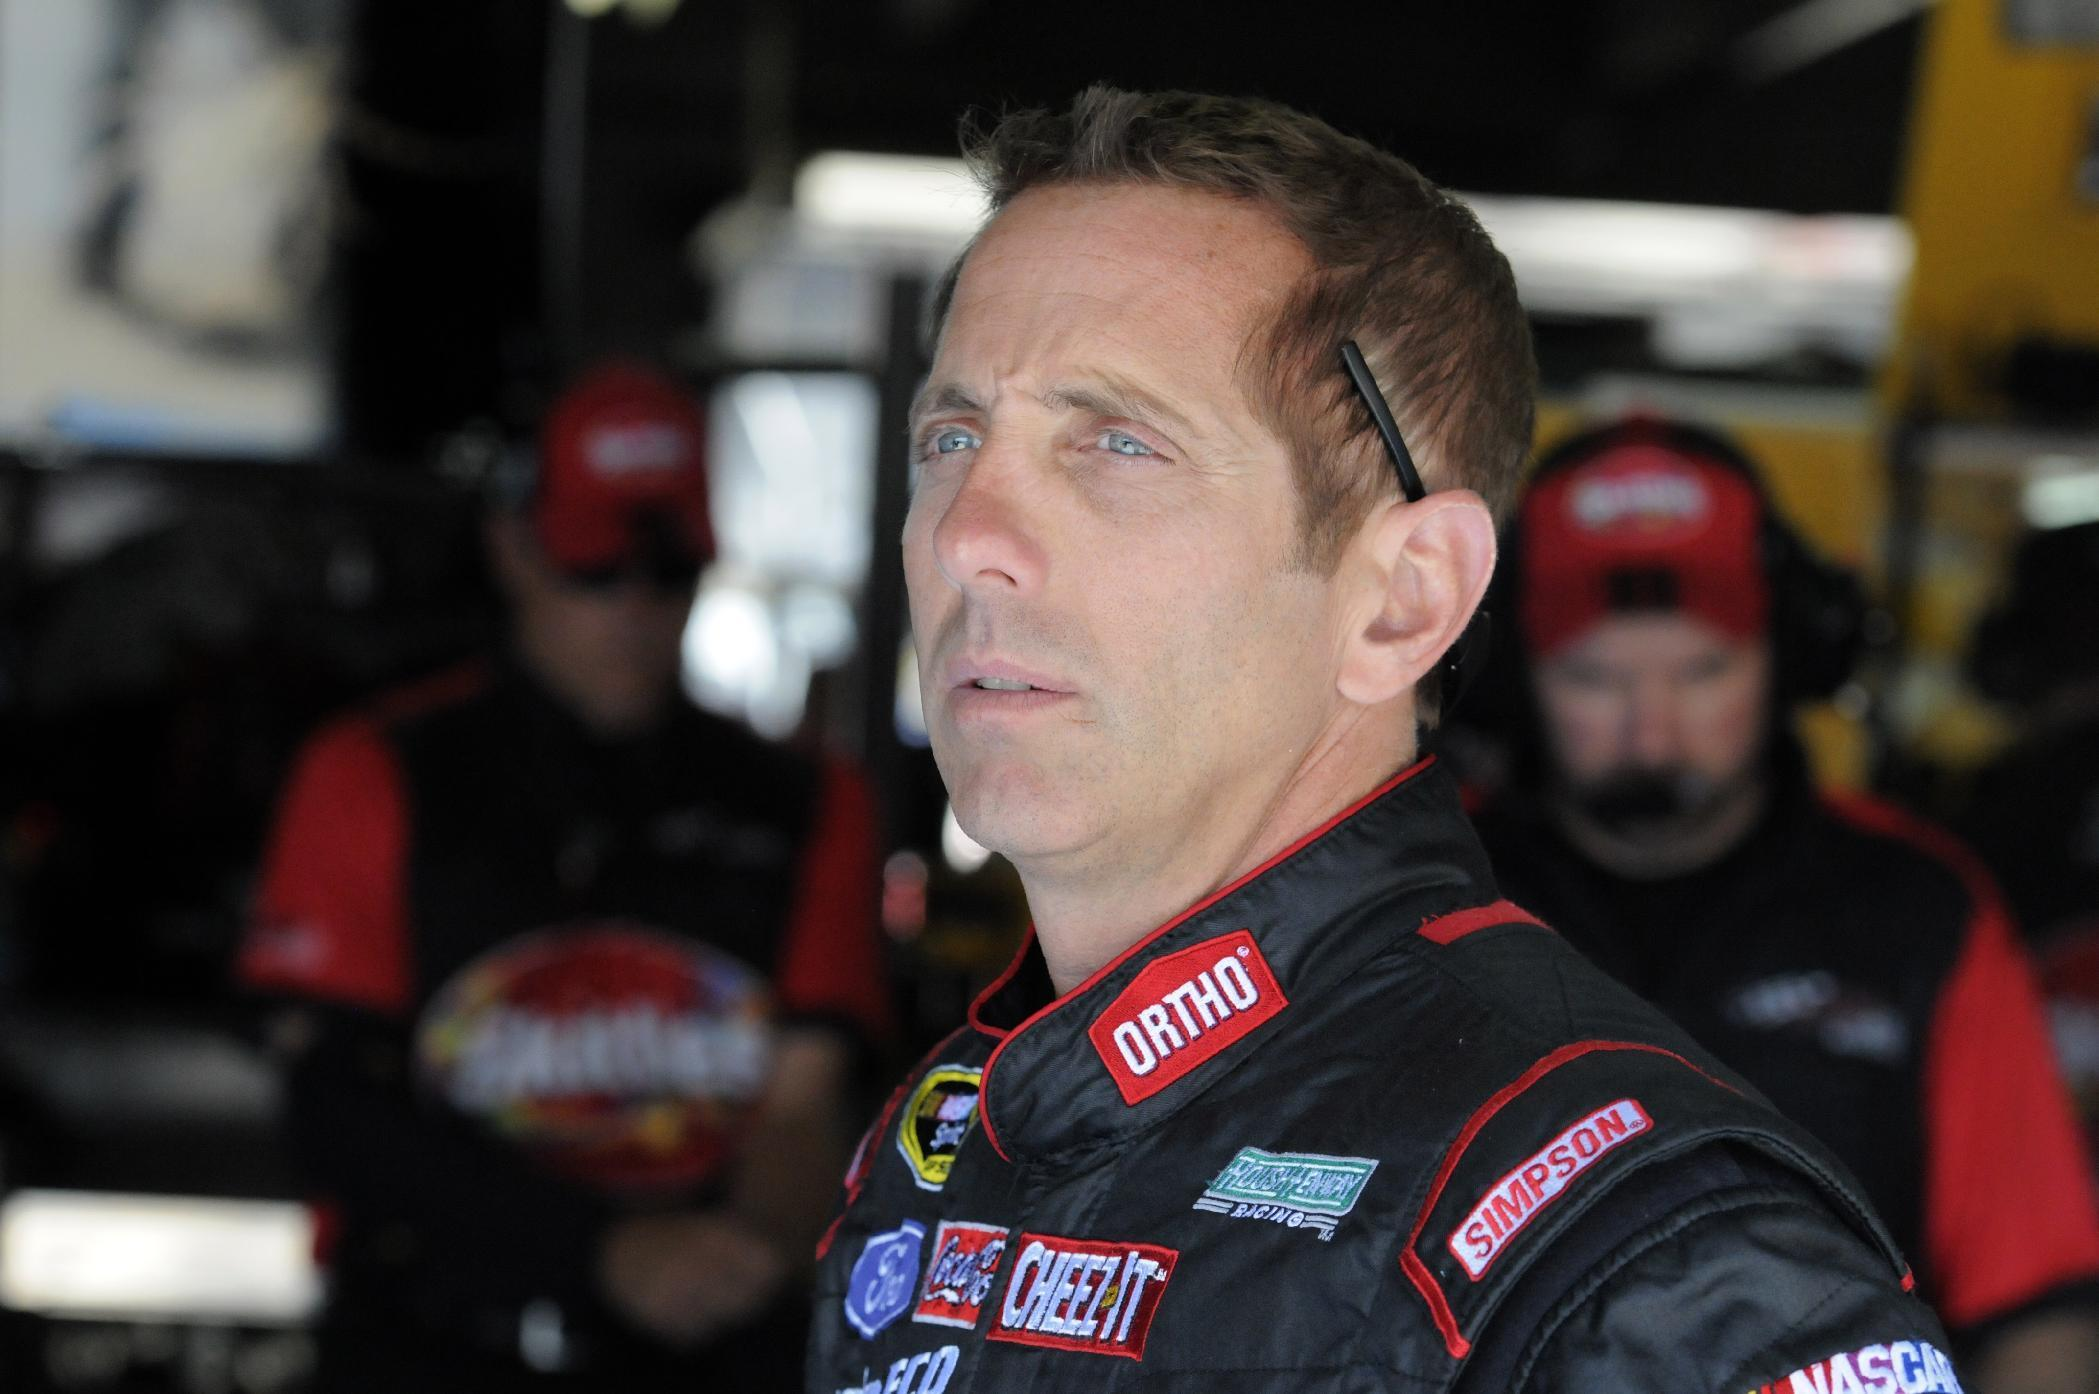 NASCAR: Biffle thinks Roush Fenway turning corner